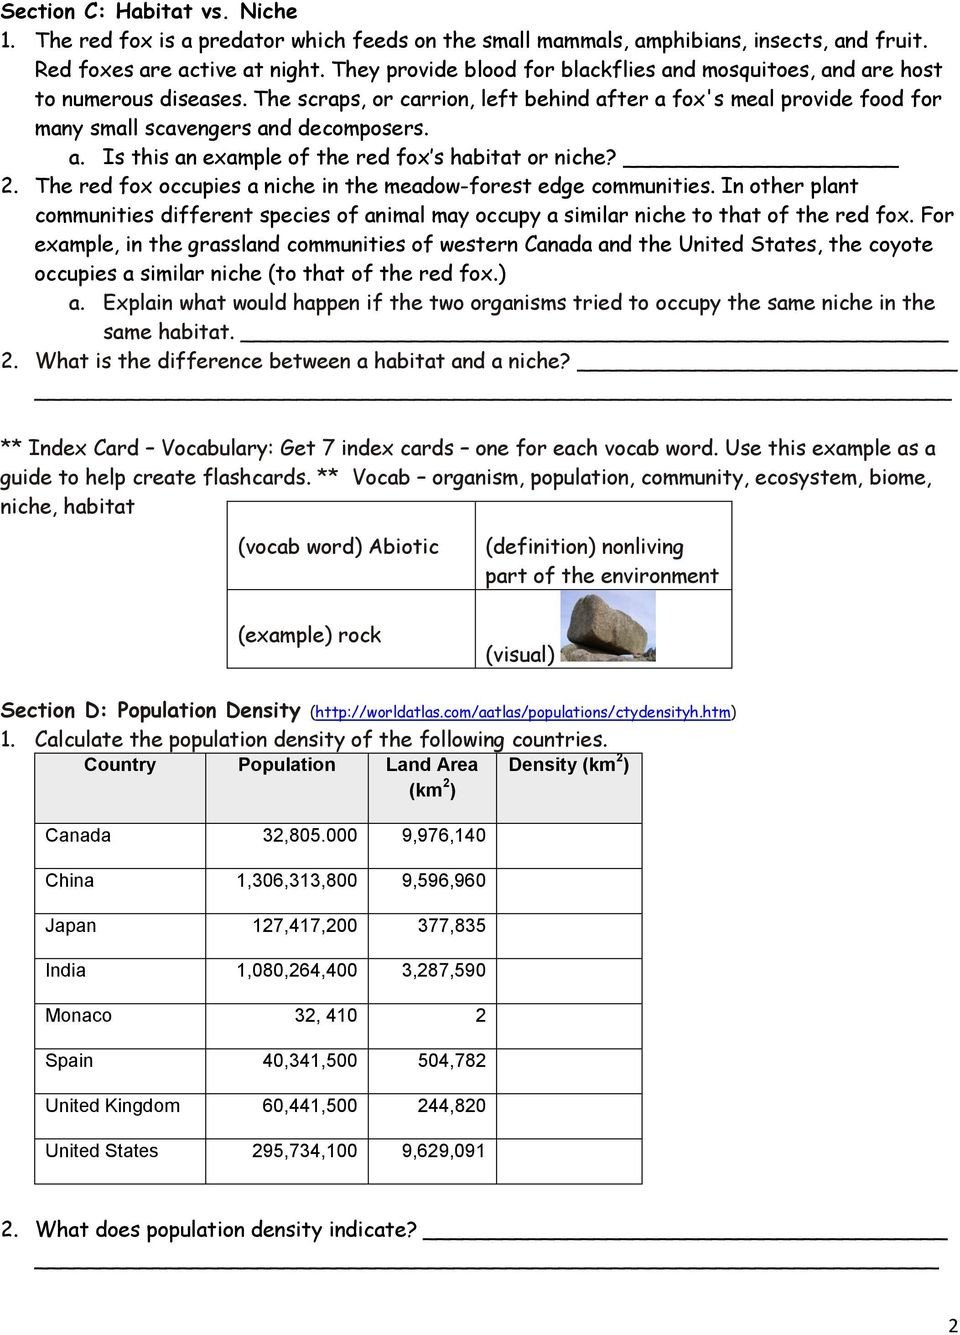 Ecosystem Worksheet Answer Key Population Munity Ecosystem Worksheet Worksheet List